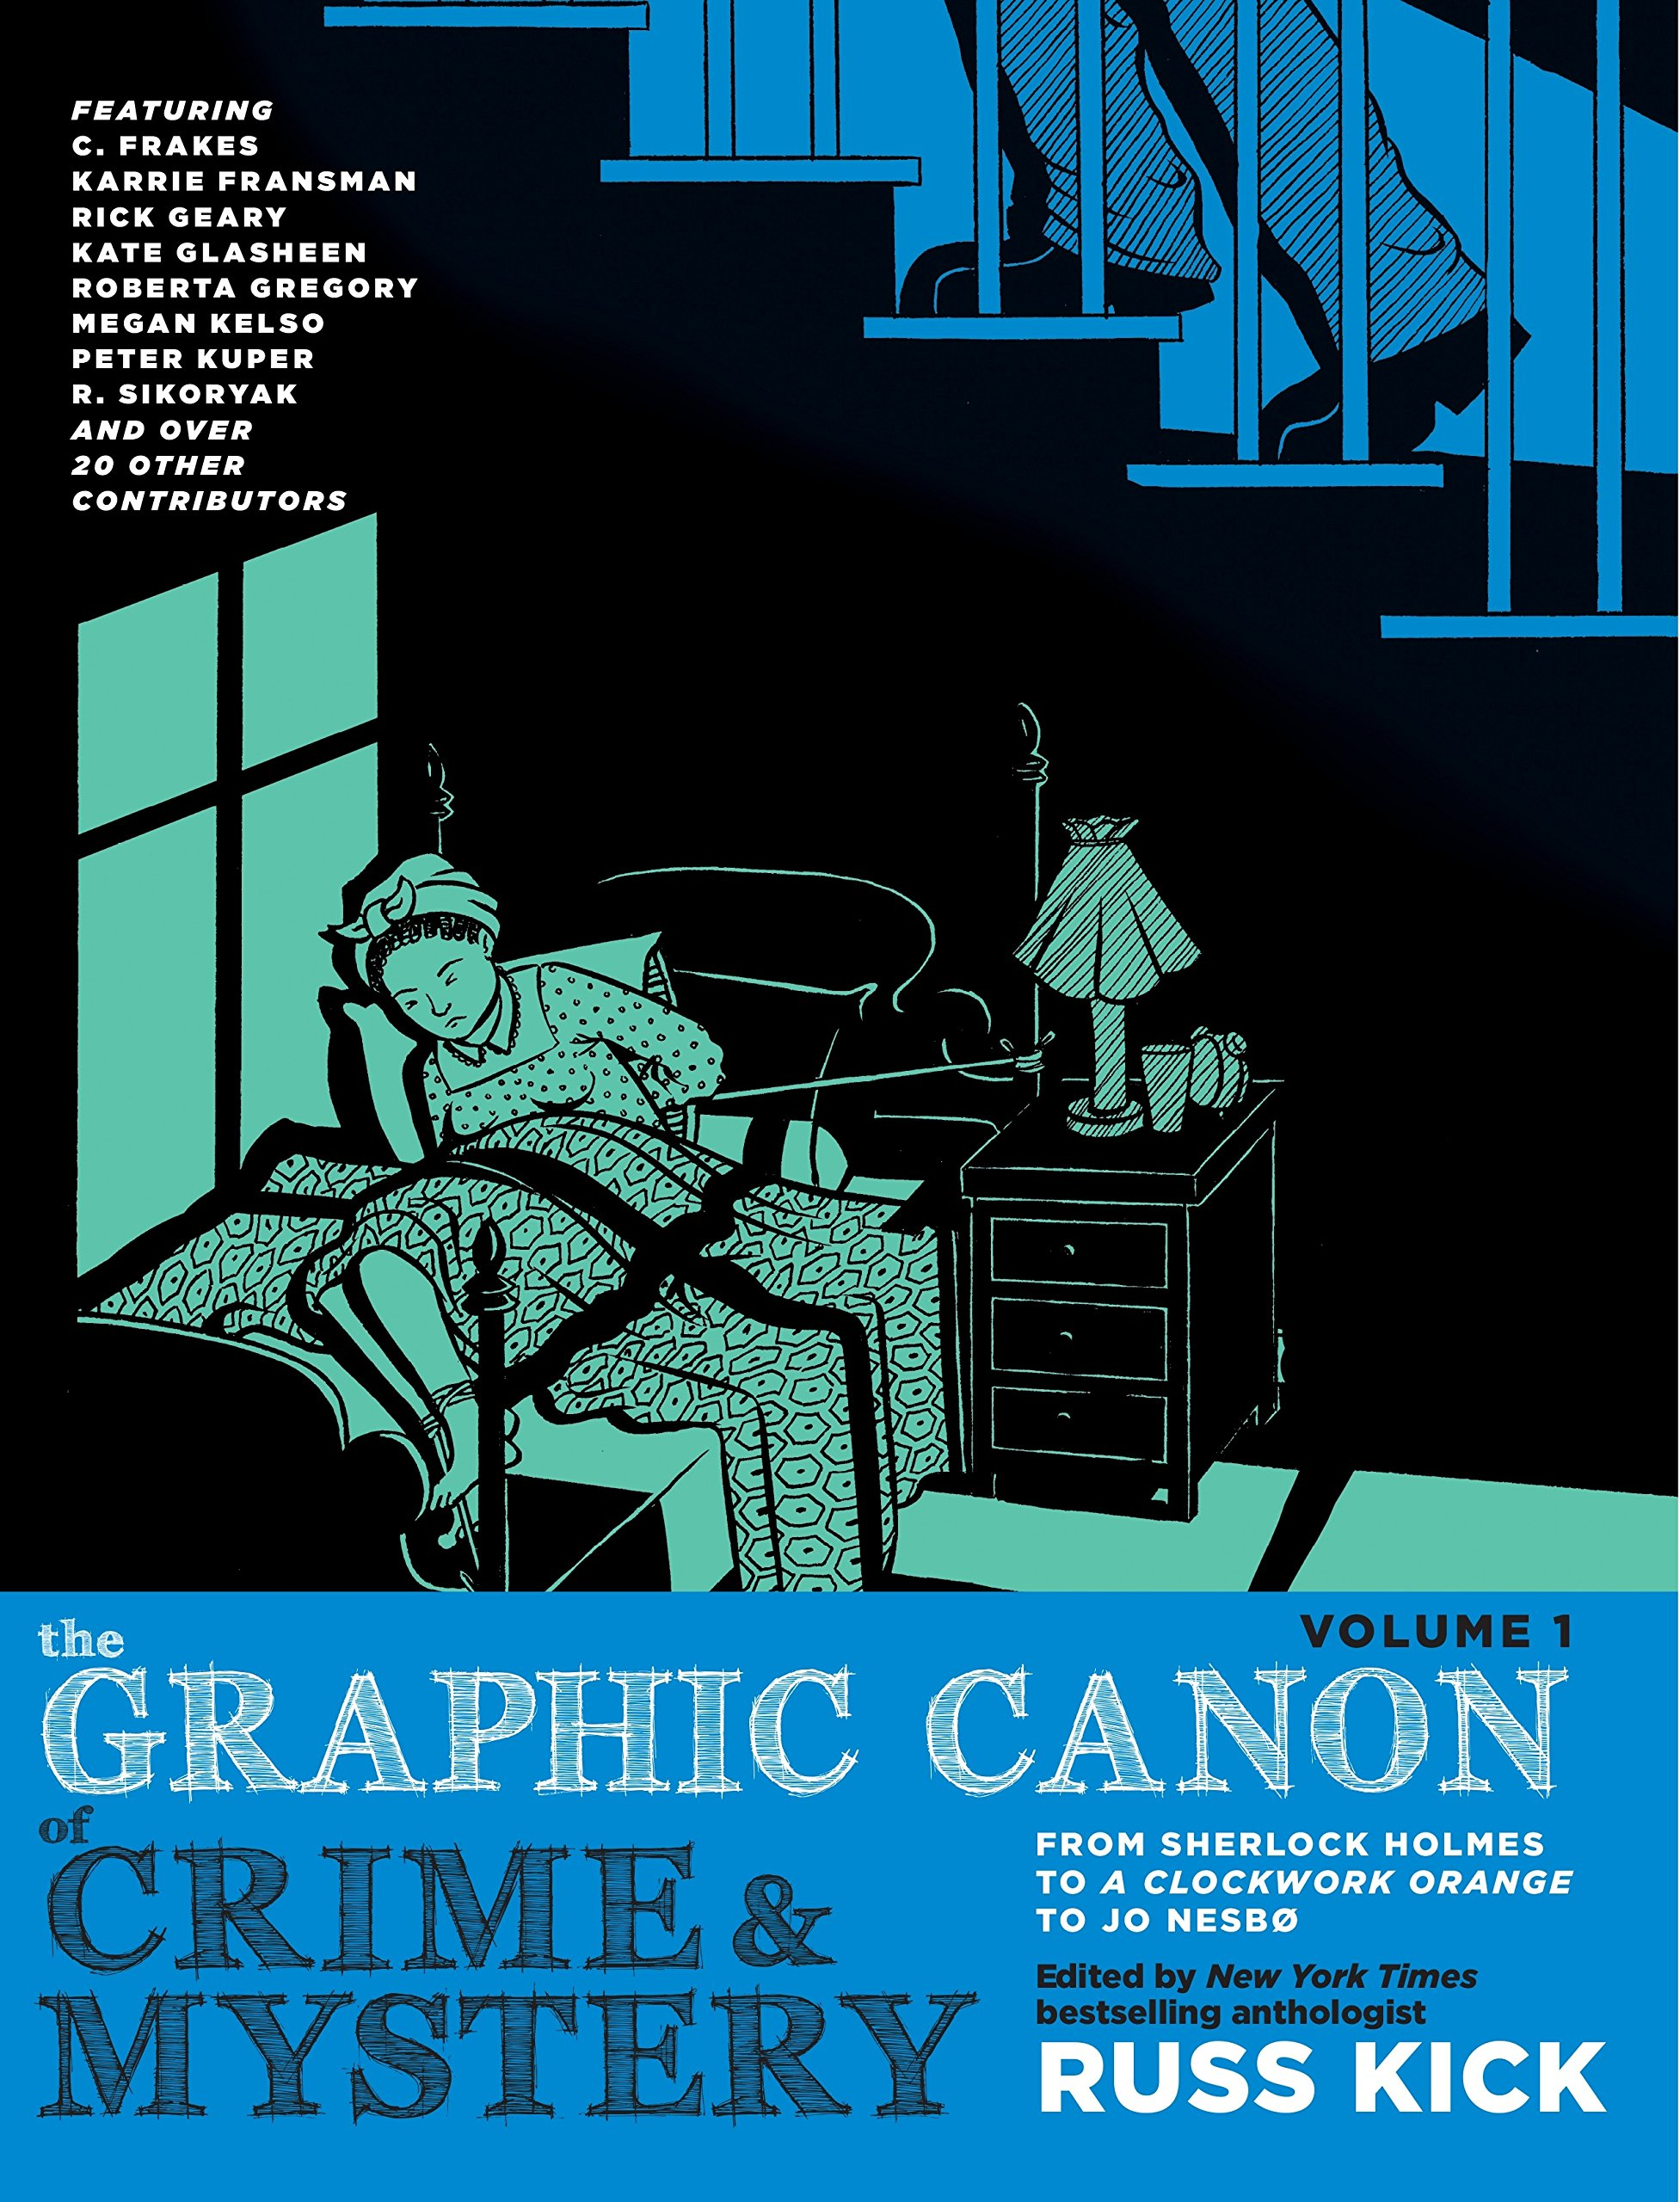 The Graphic Canon of Crime and Mystery, Vol. 1: From Poe to Arthur Conan Doyle to Stephen King